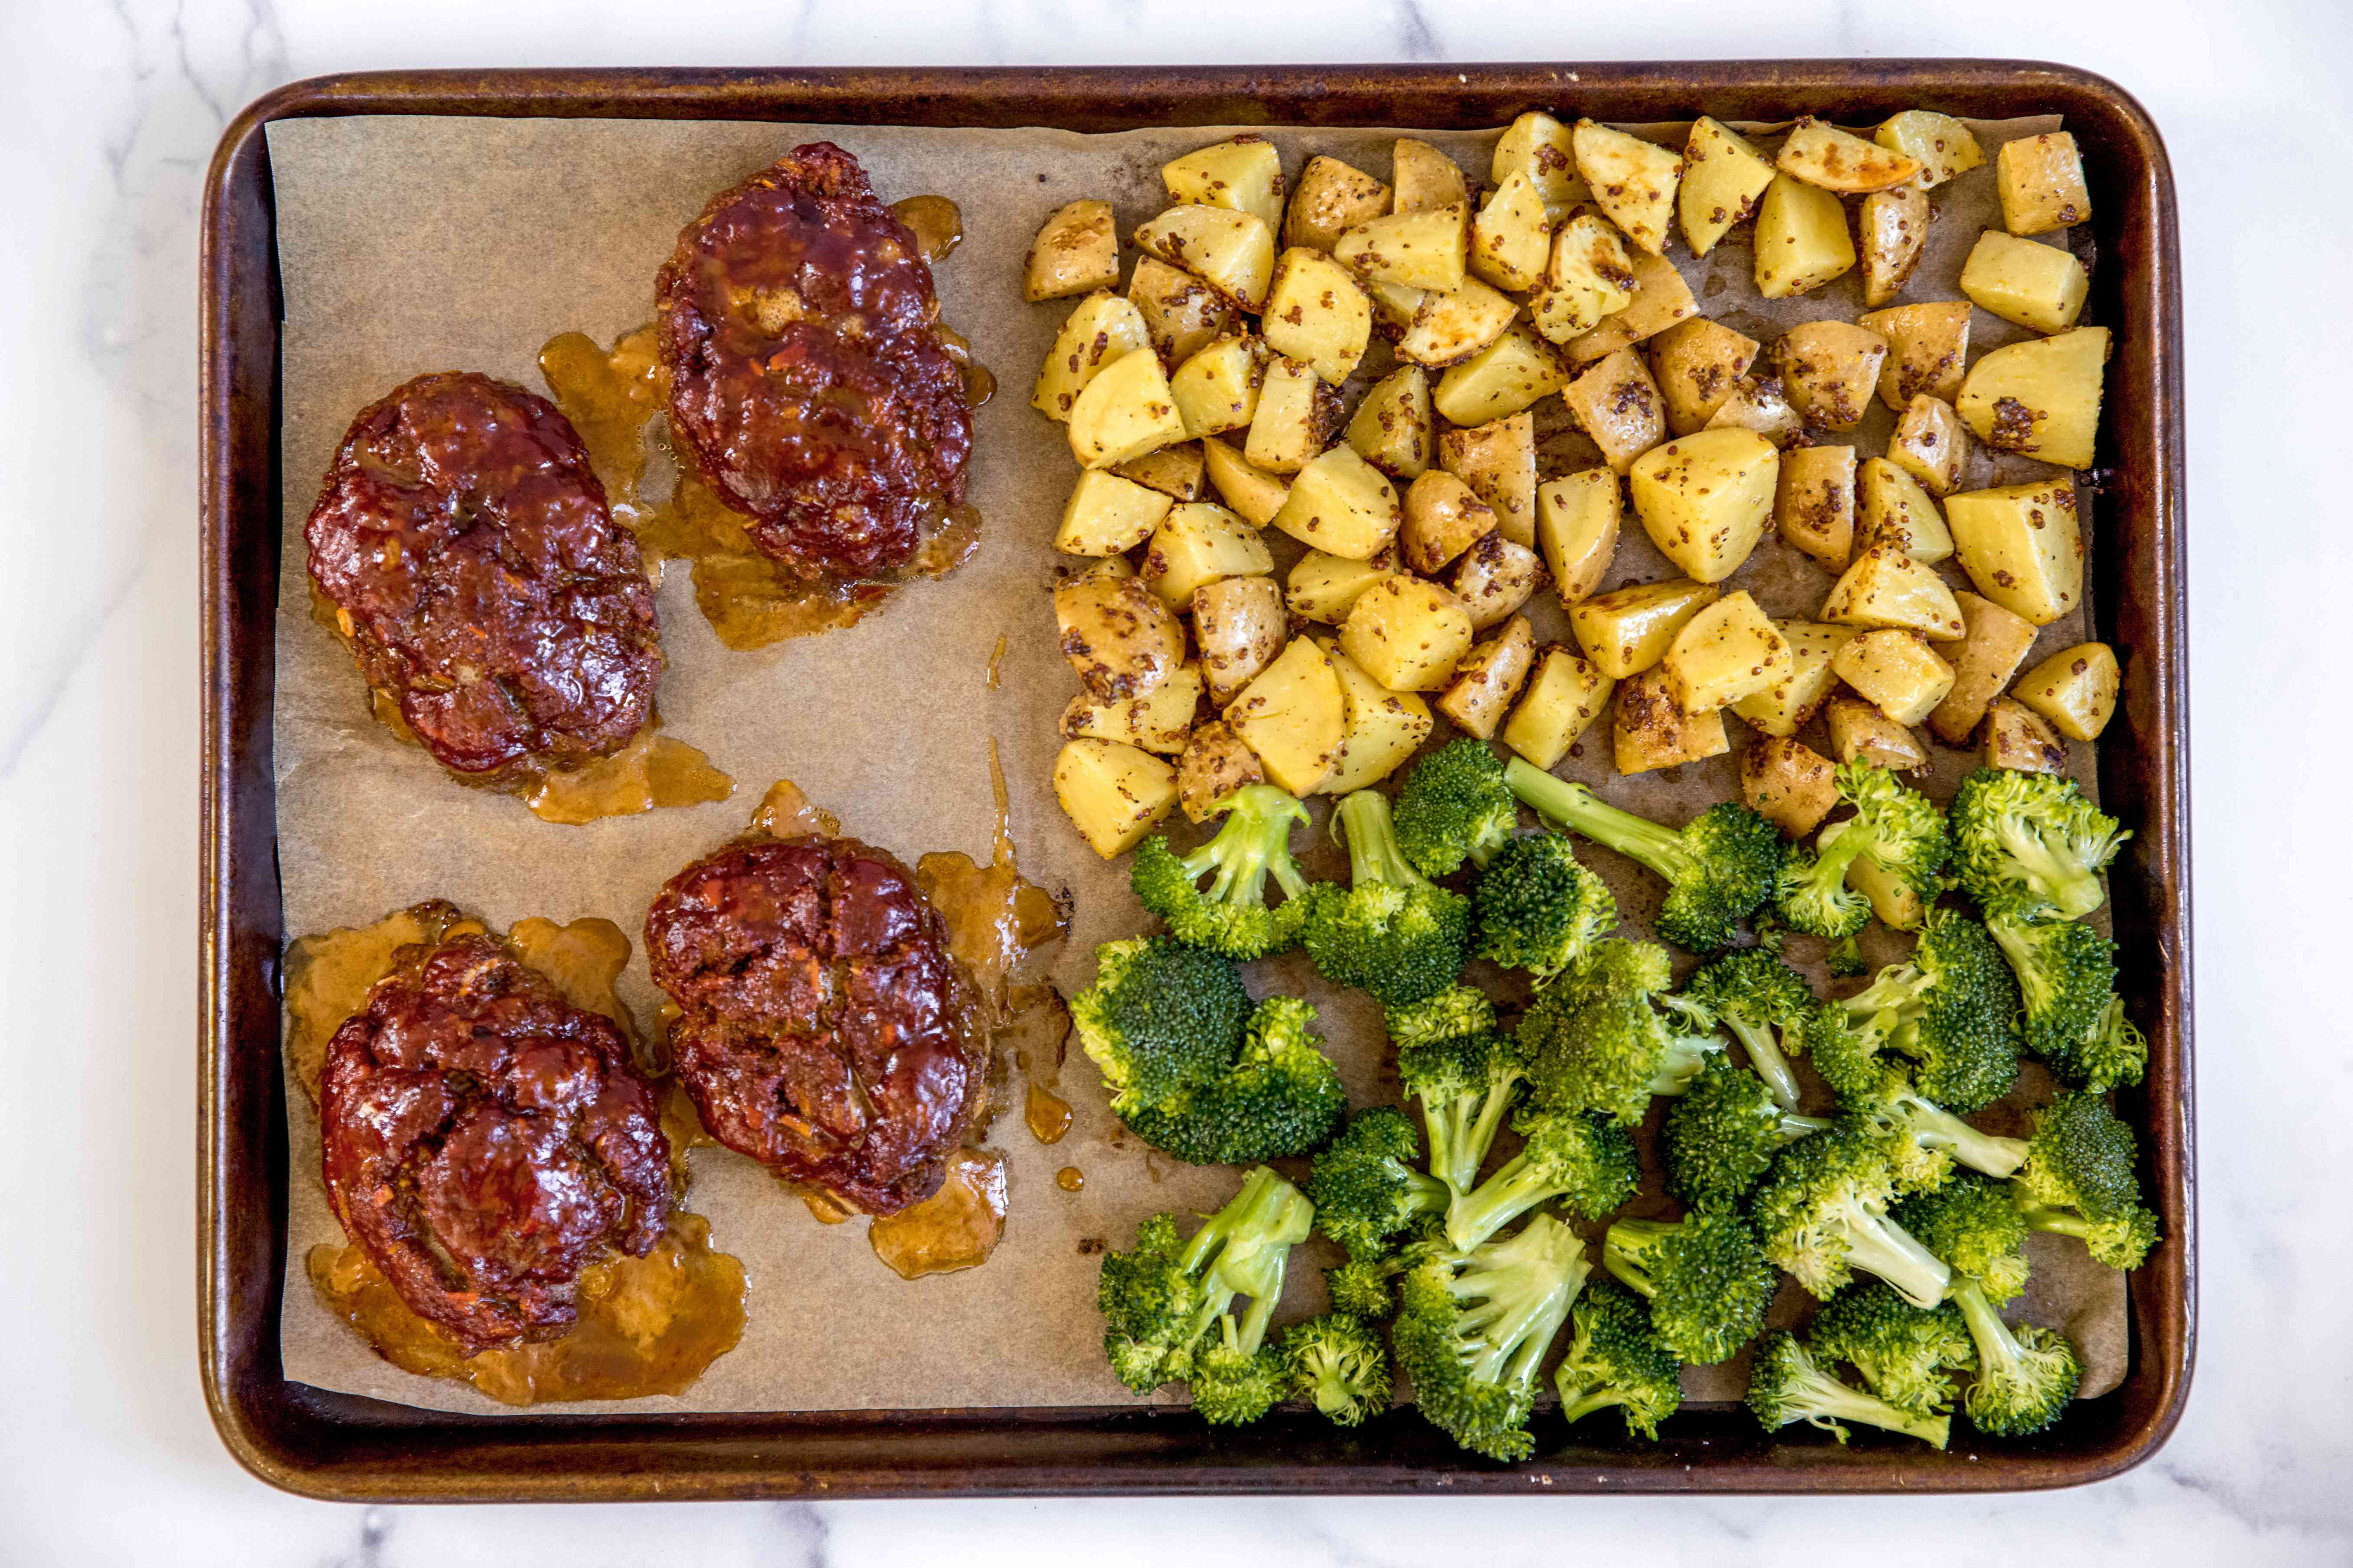 Overhead view of a sheet pan of mini meatloaves with veg and potatoes in a sheet pan.